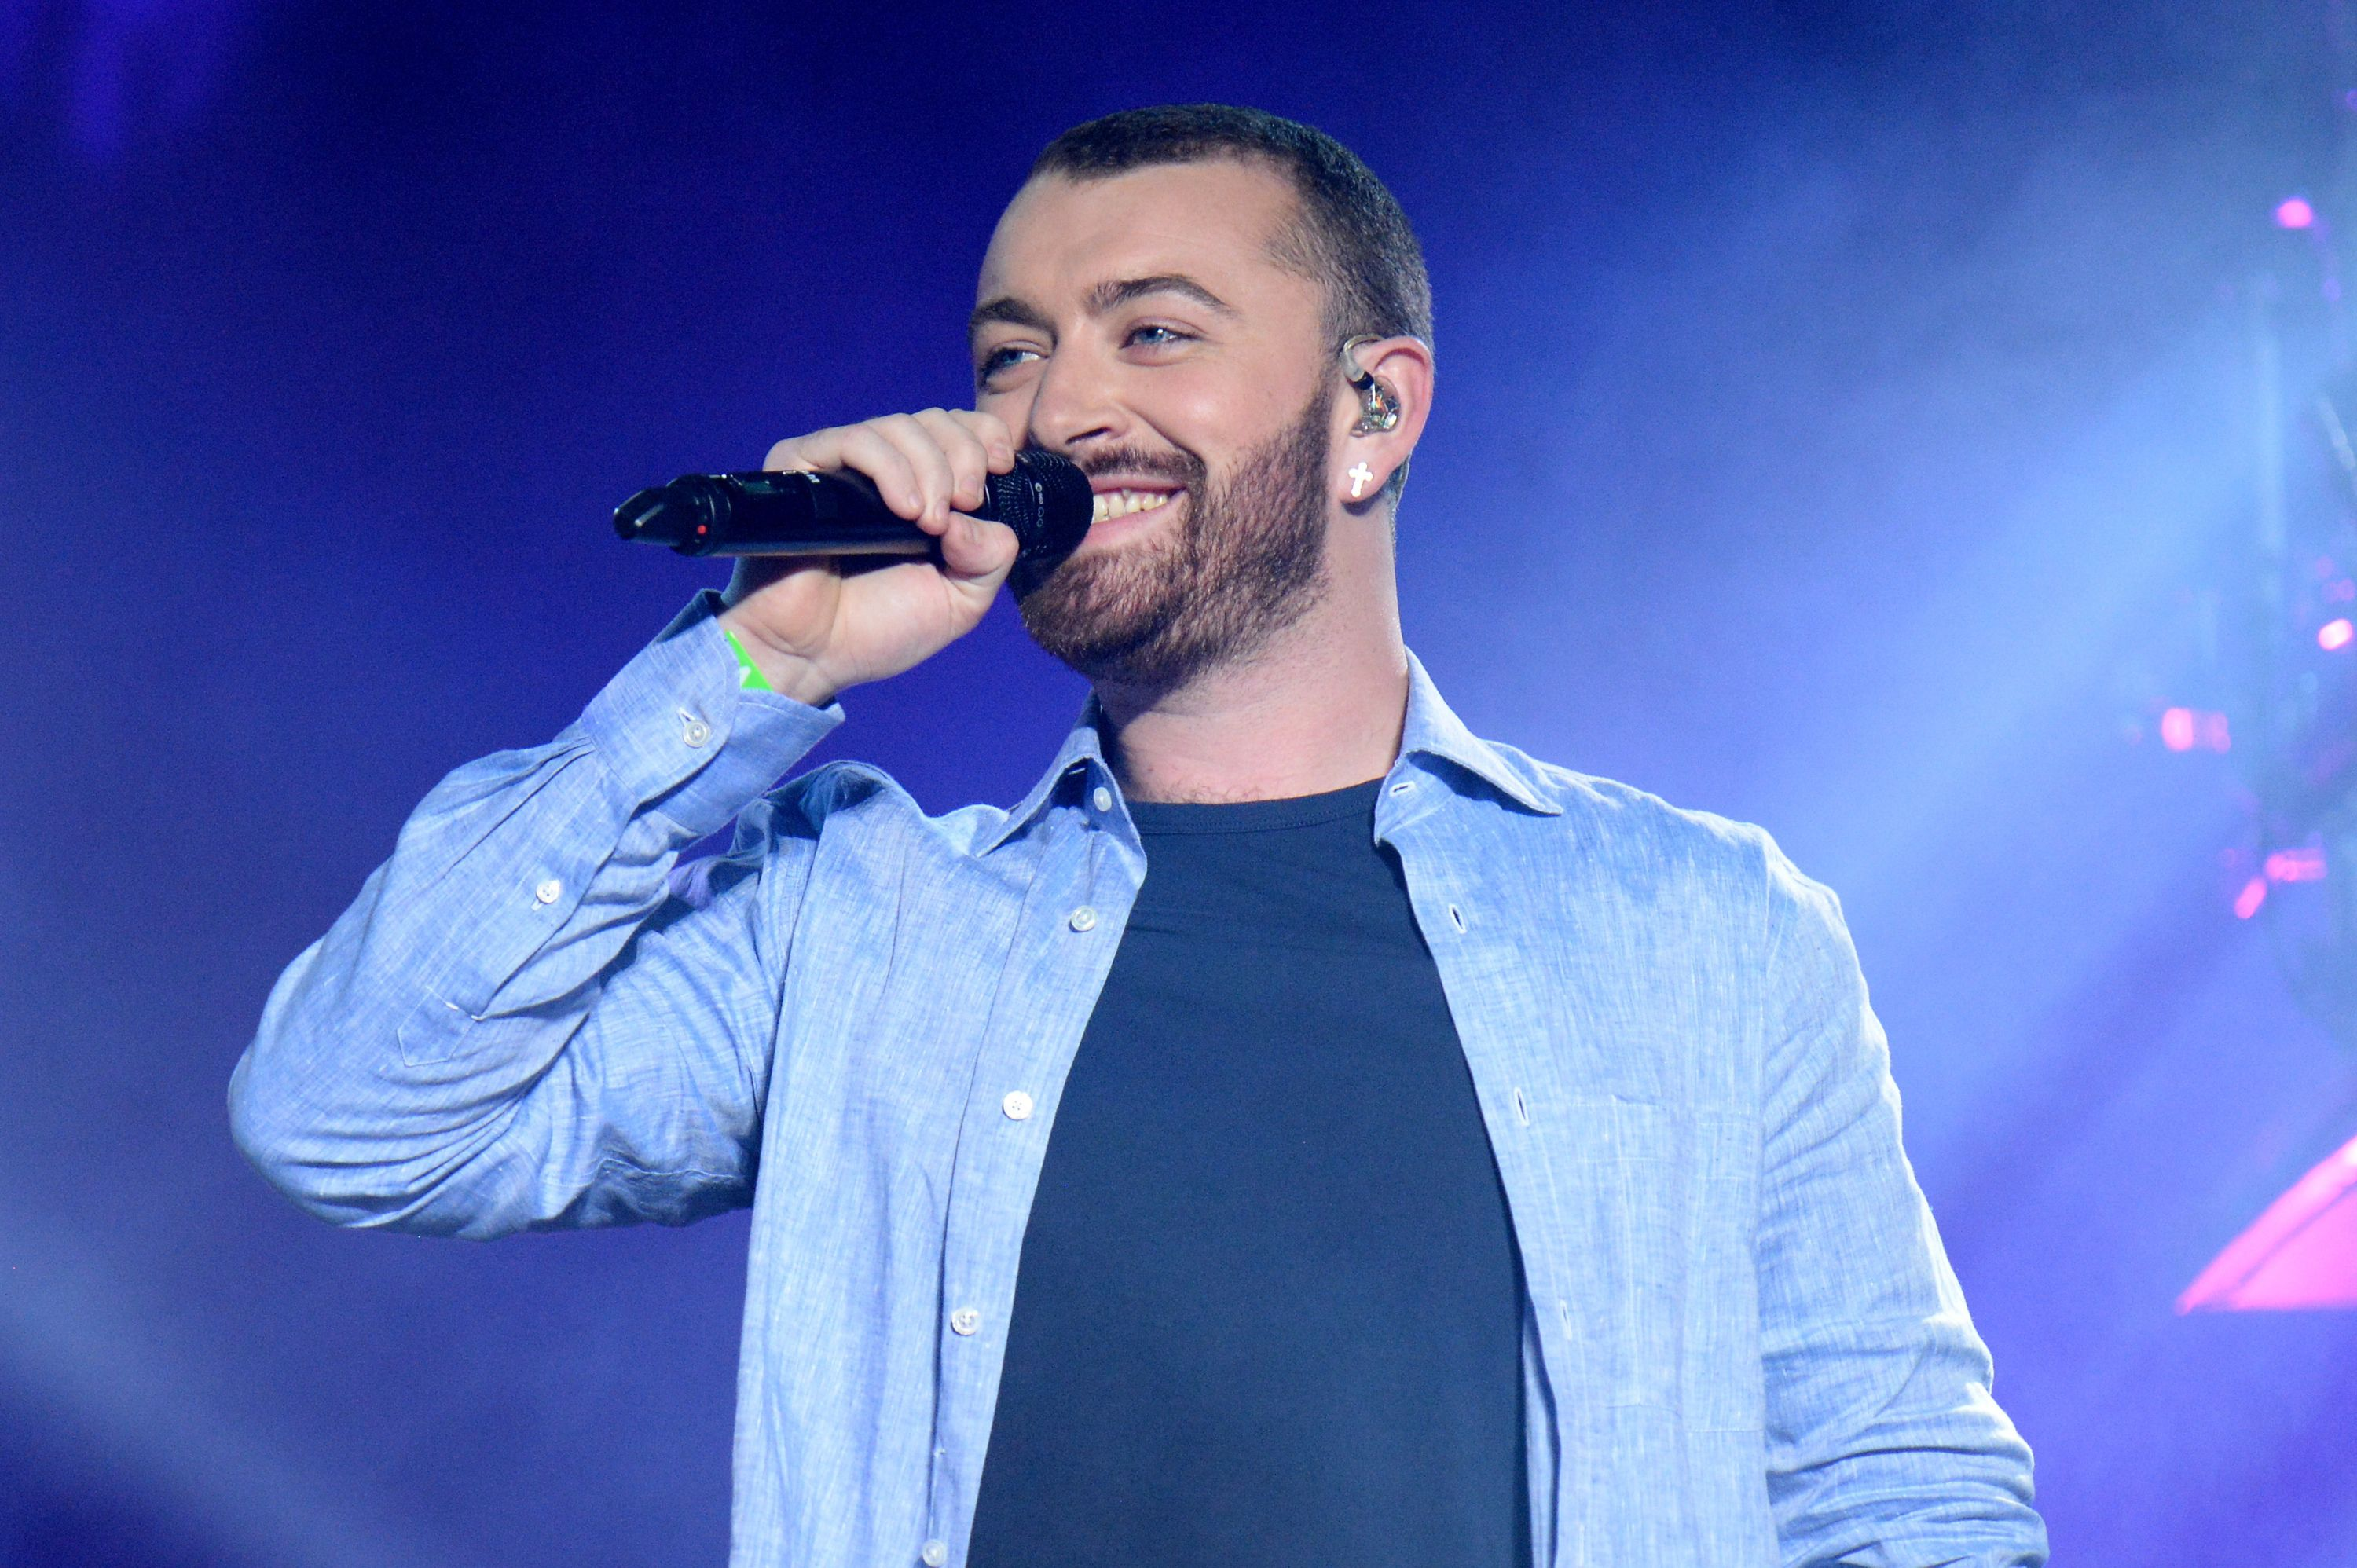 sam smith non songs pop song binary goodbyes too artists recording arts musician mazur kevin getty coachella gender comes single